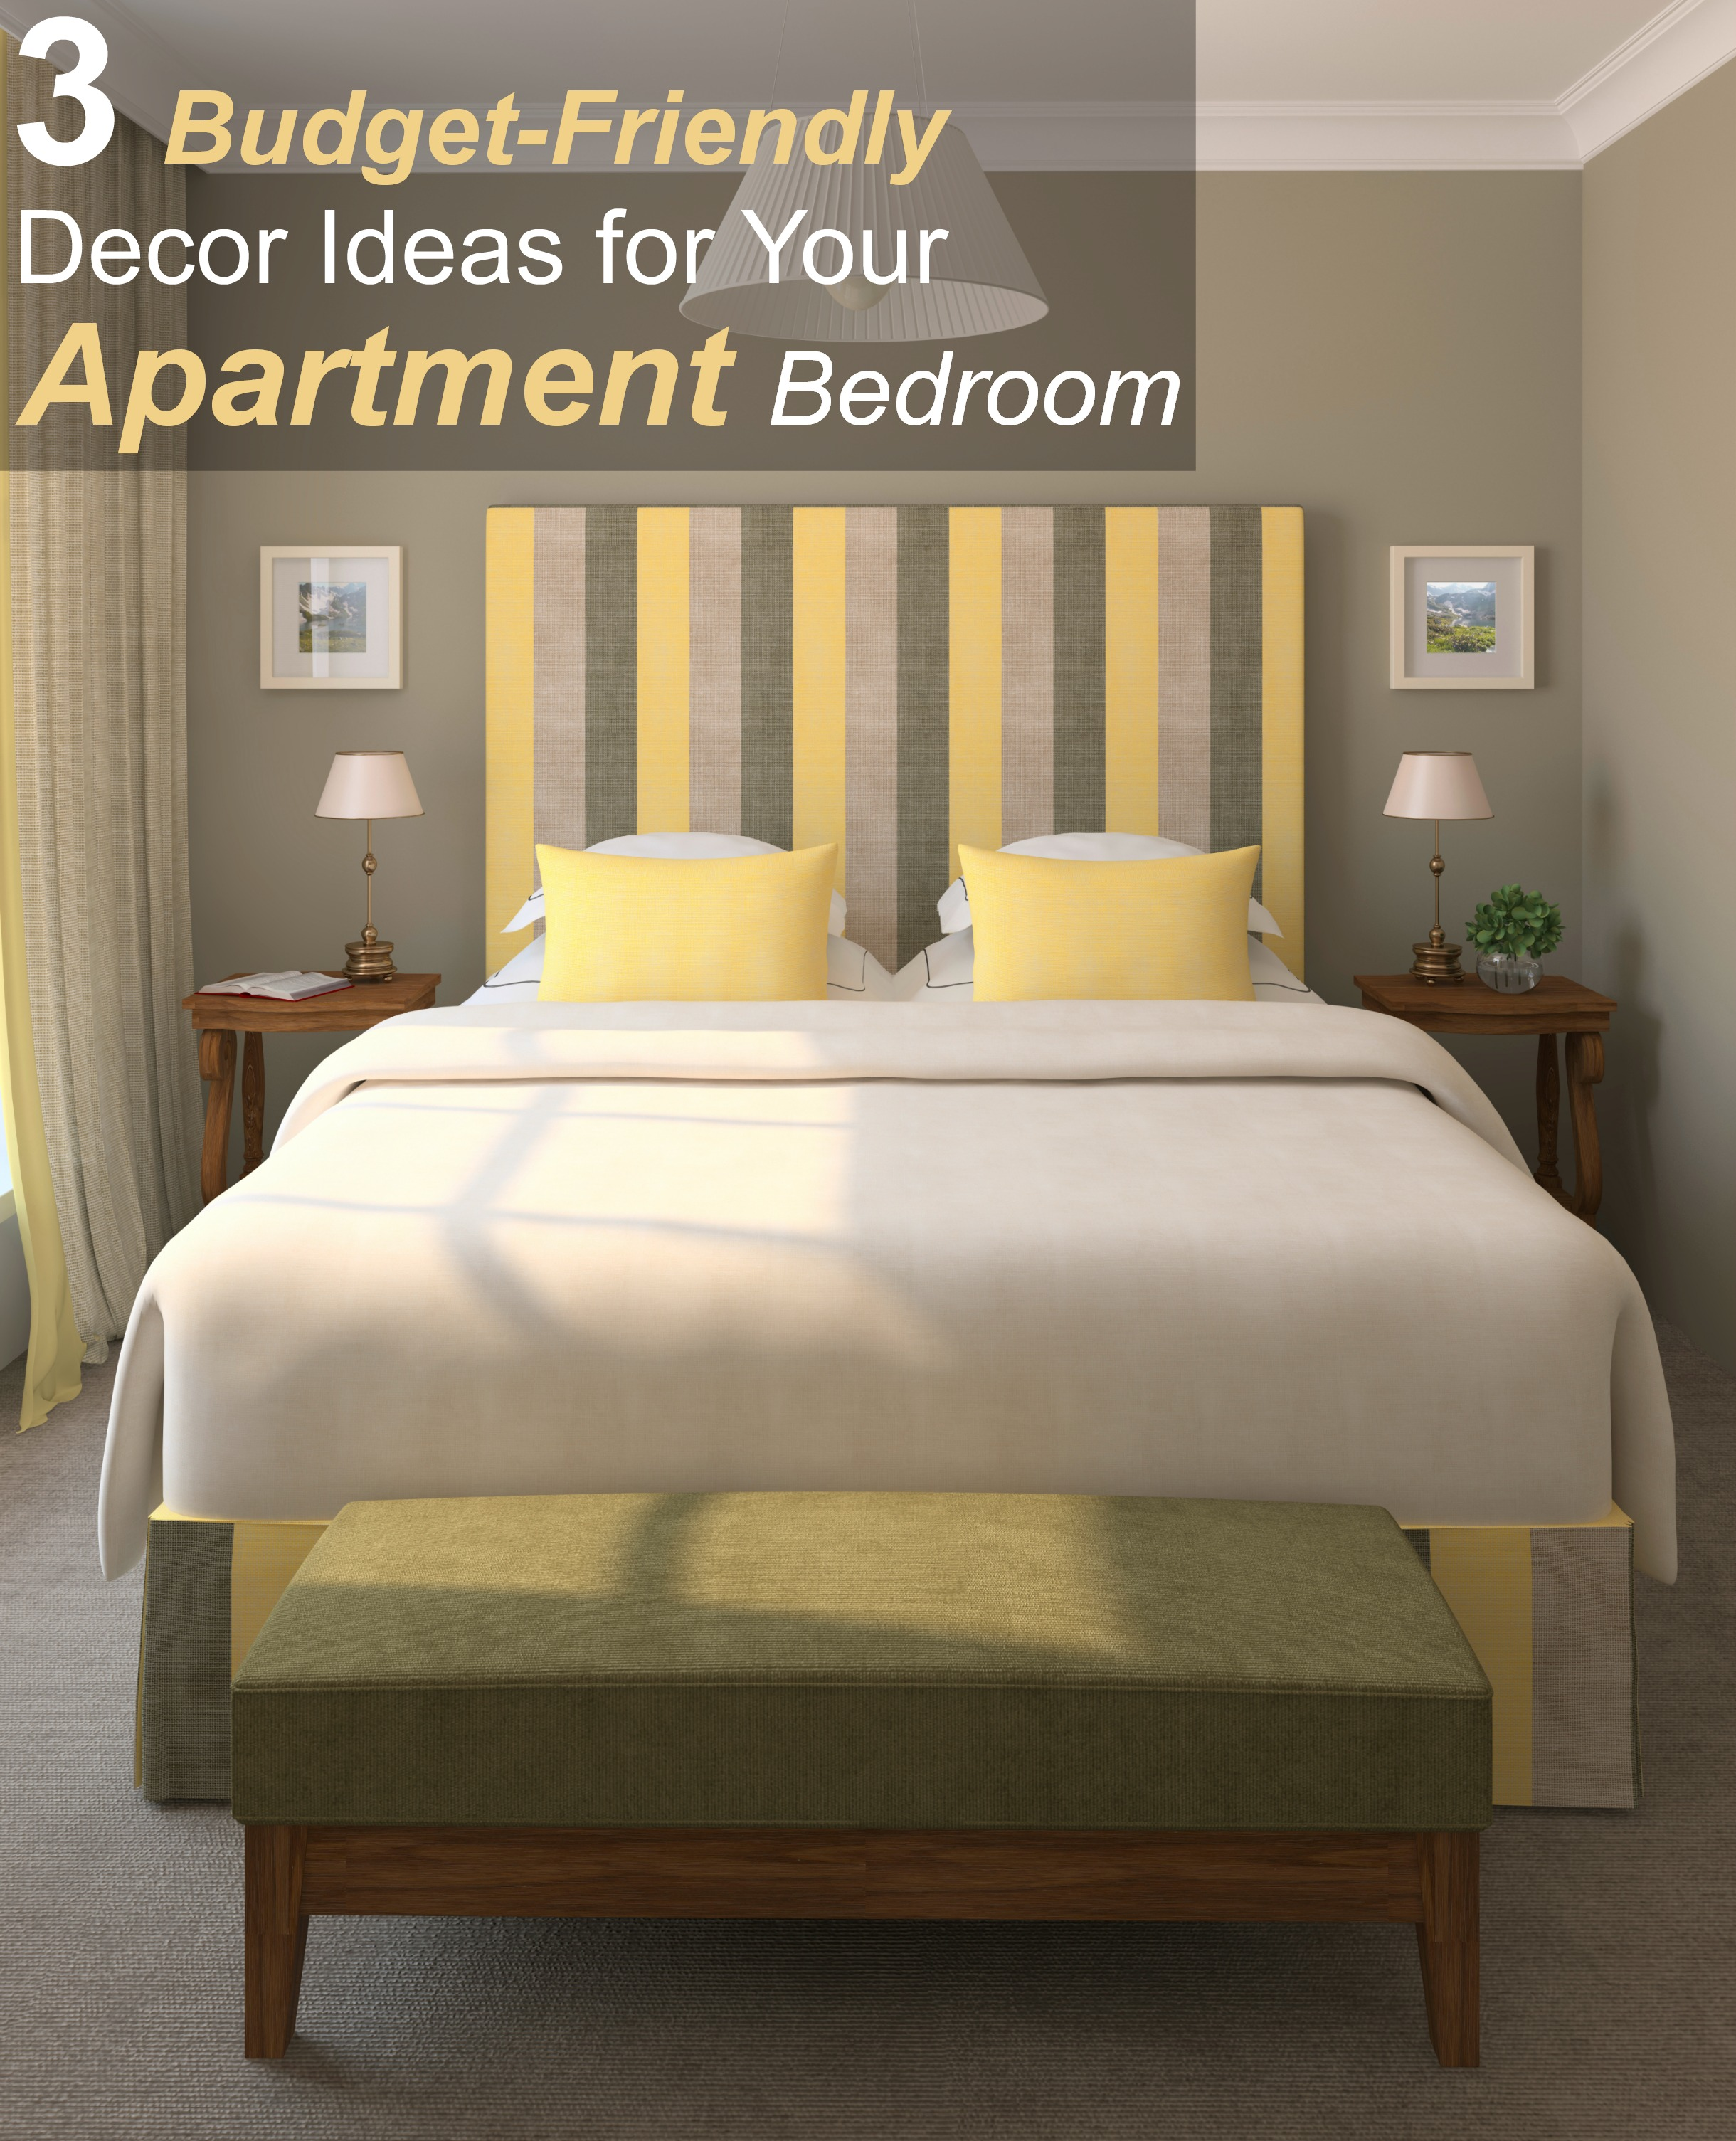 Best Kitchen Gallery: 3 Budget Friendly Decor Ideas For Your Apartment Bedroom of Bedroom On A Budget Design Ideas  on rachelxblog.com